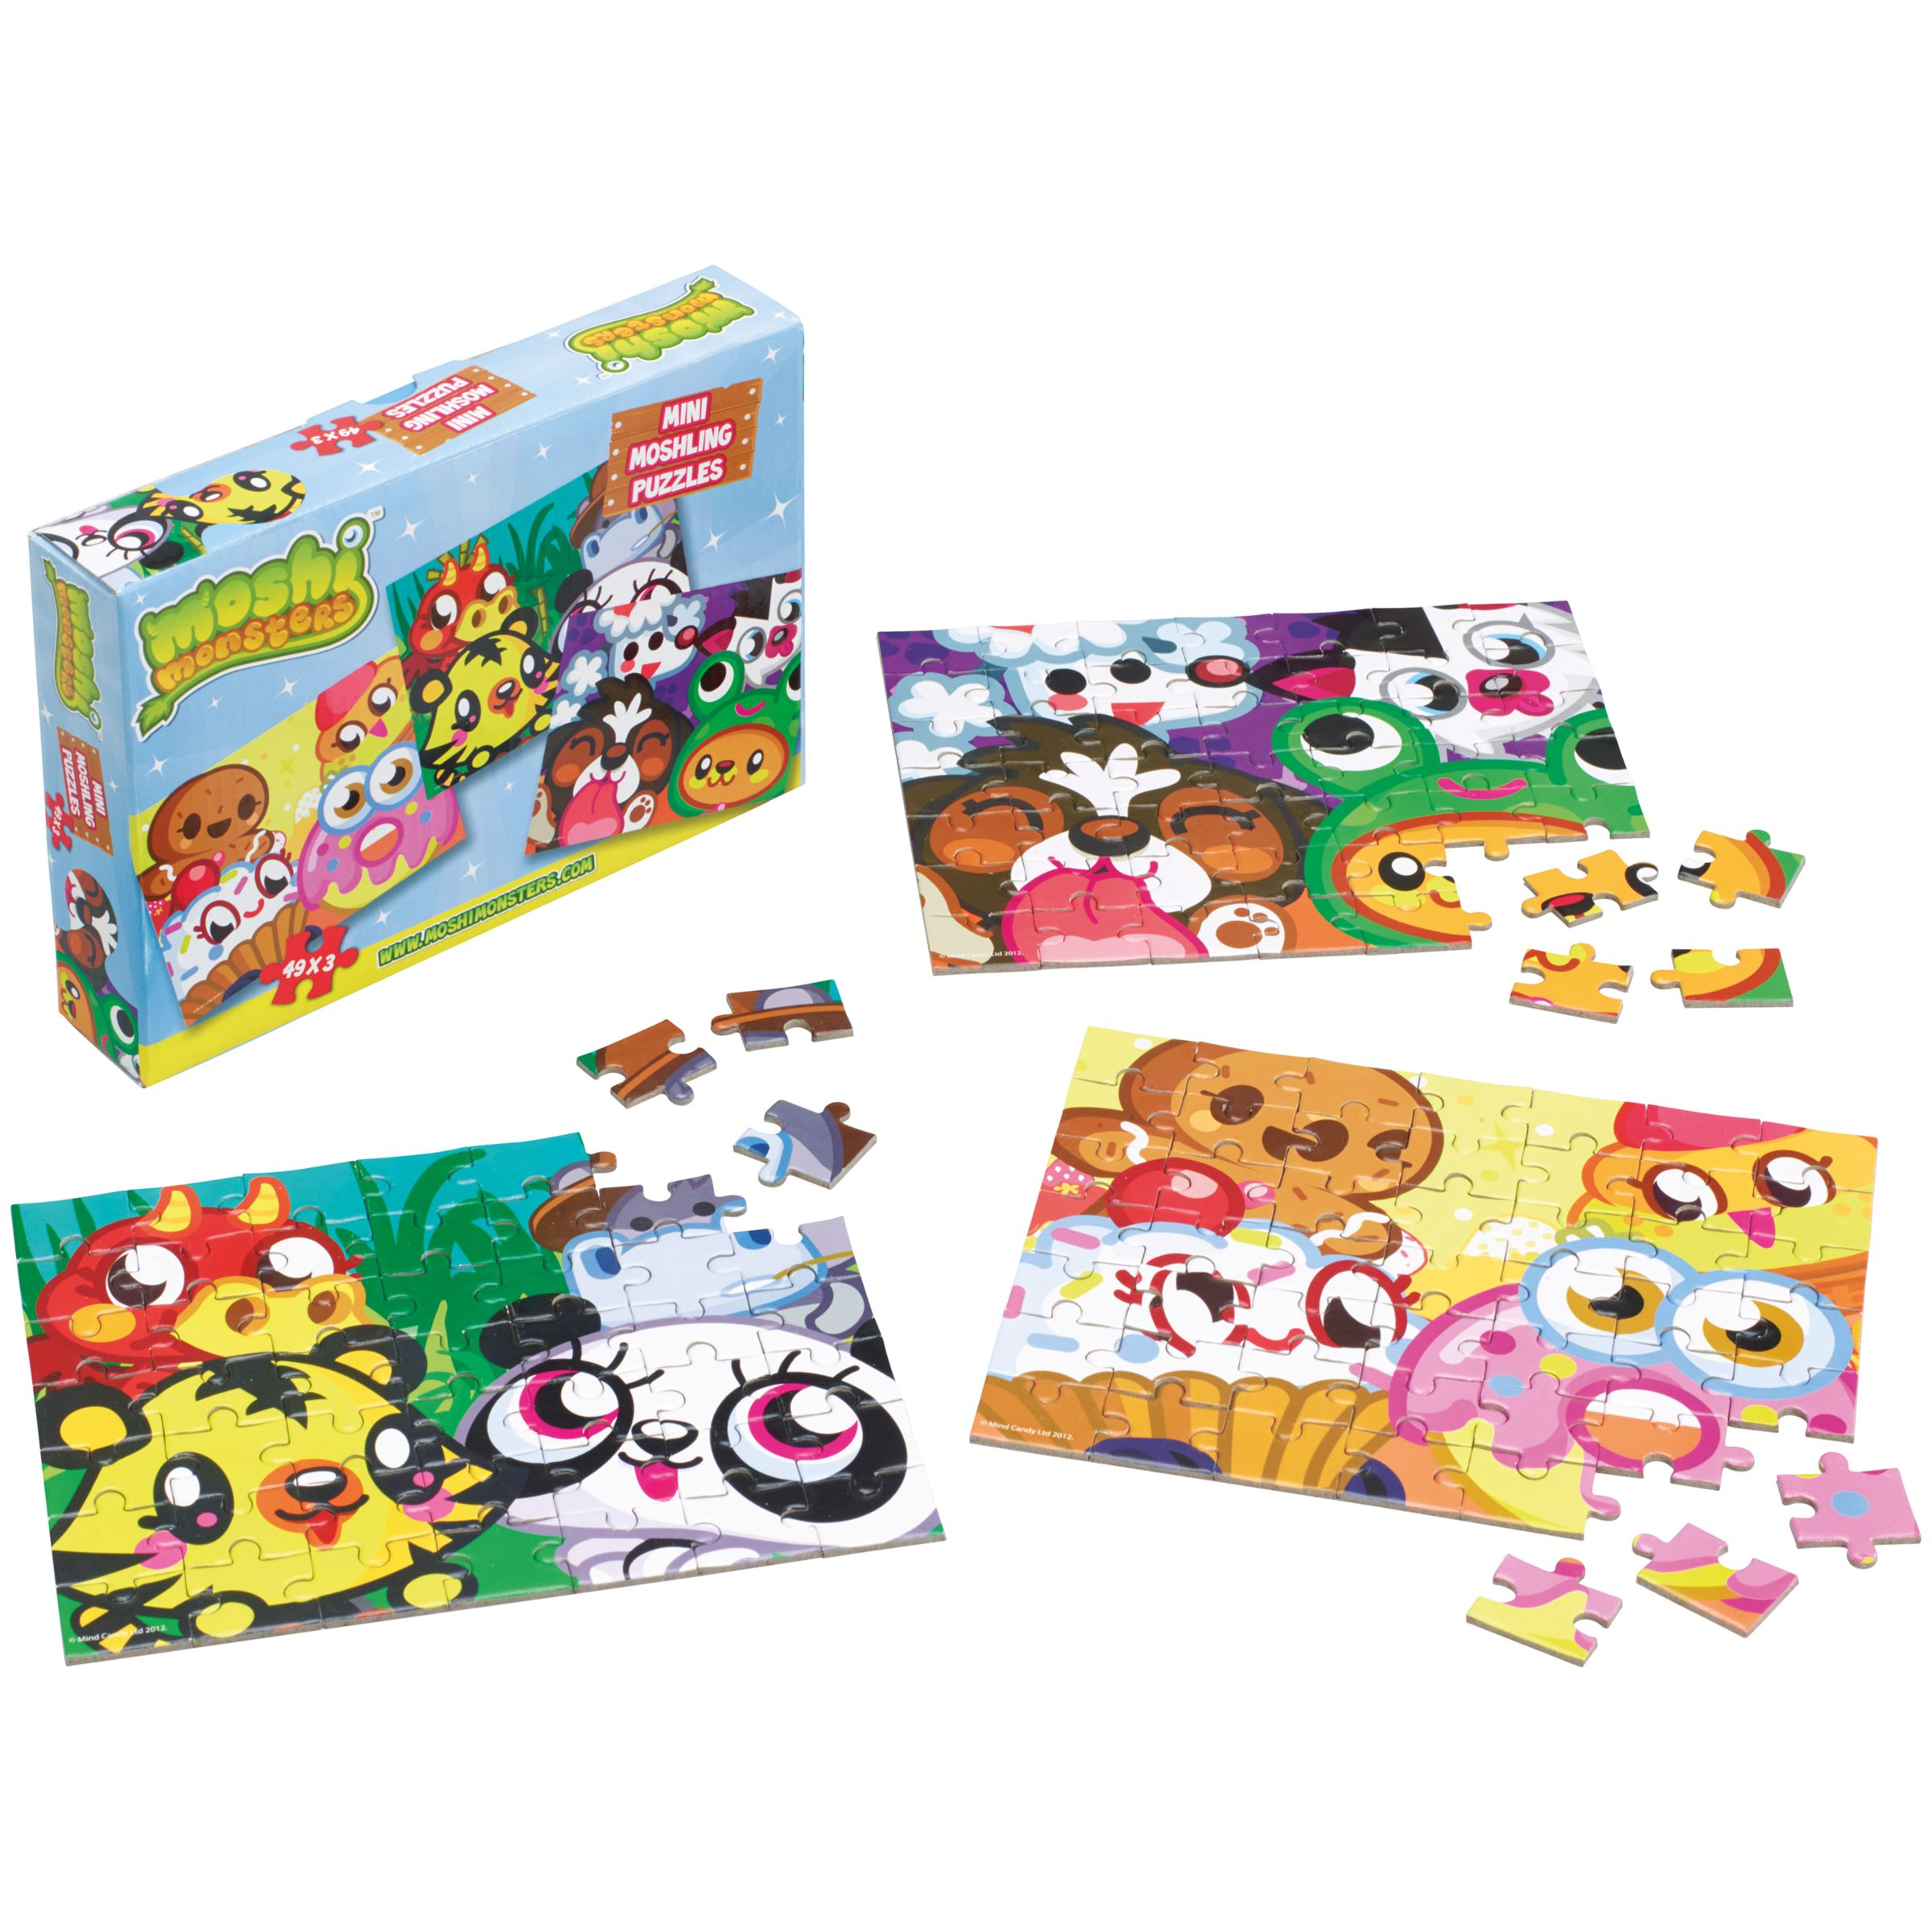 Moshi Monsters Mini Moshling Puzzles, 49 Pieces, Pack Of 3